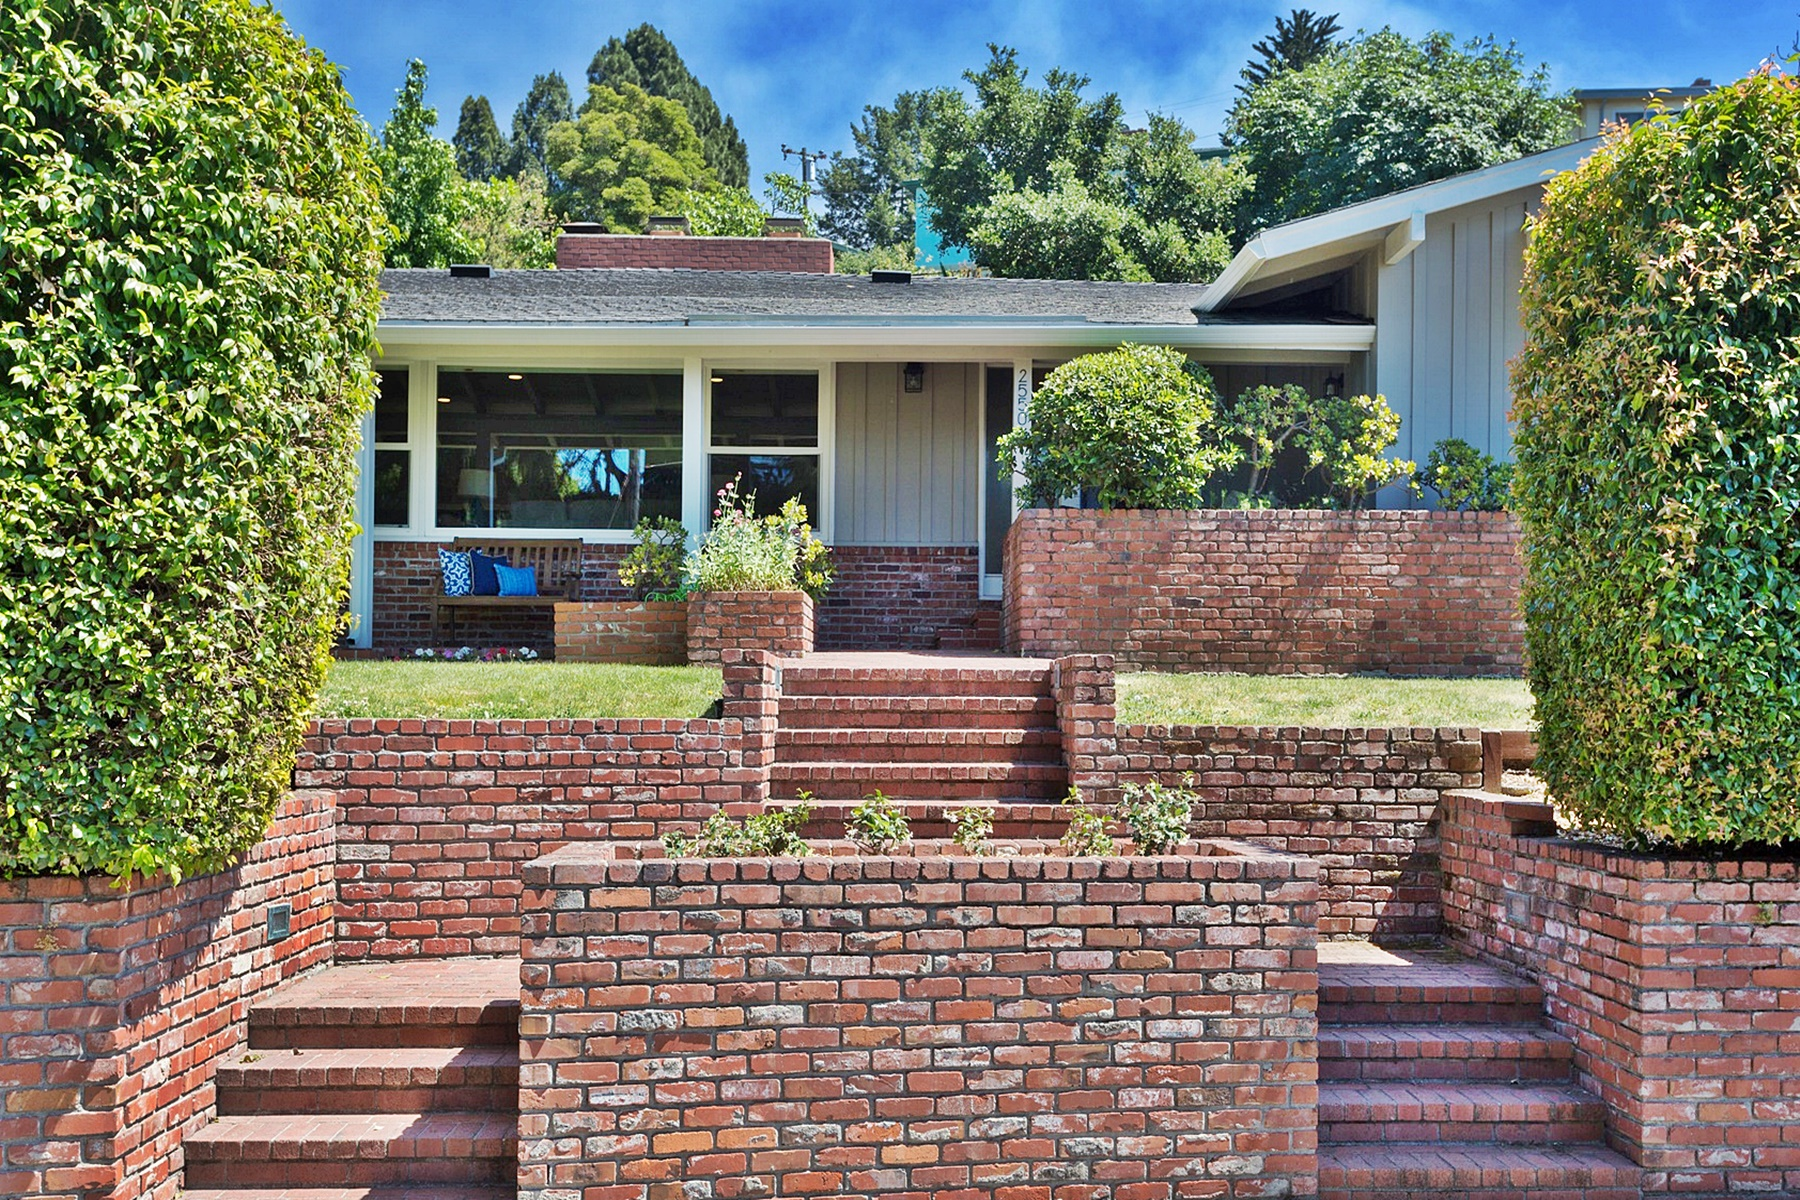 Single Family Home for Sale at Remodeled Mid-Century Home 2550 Carquinez Avenue El Cerrito, California 94530 United States